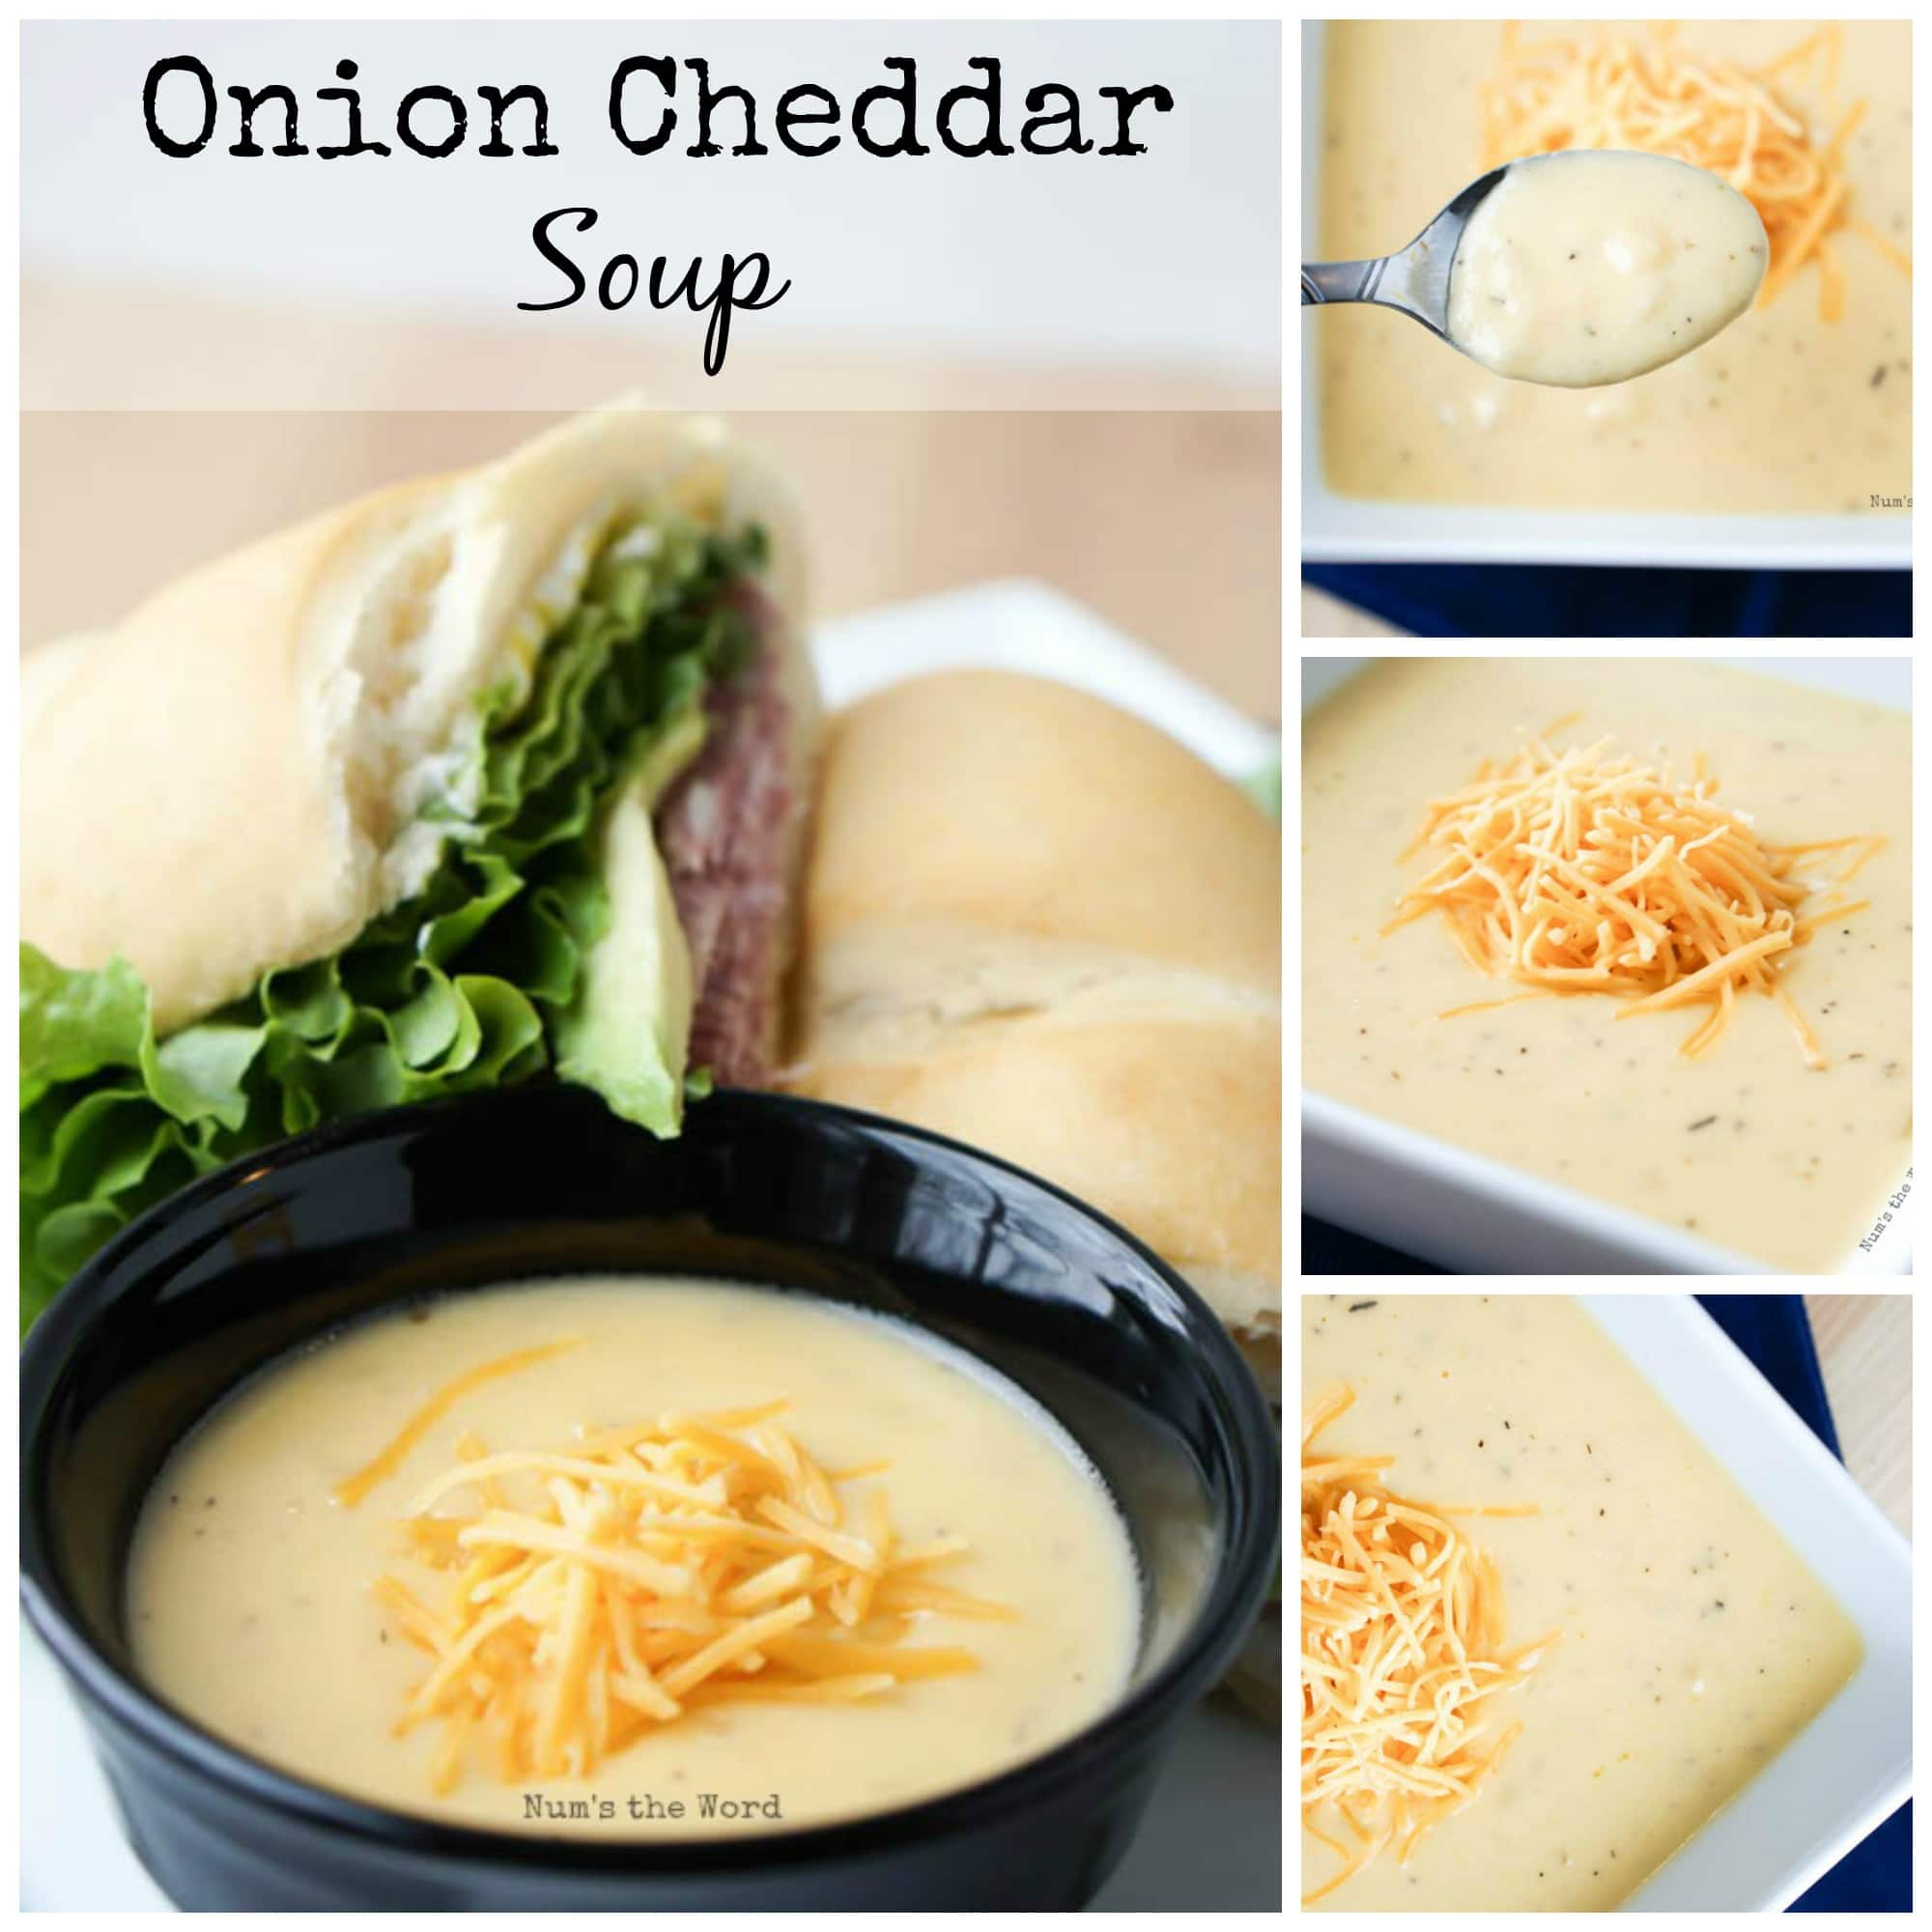 Onion Cheddar Soup